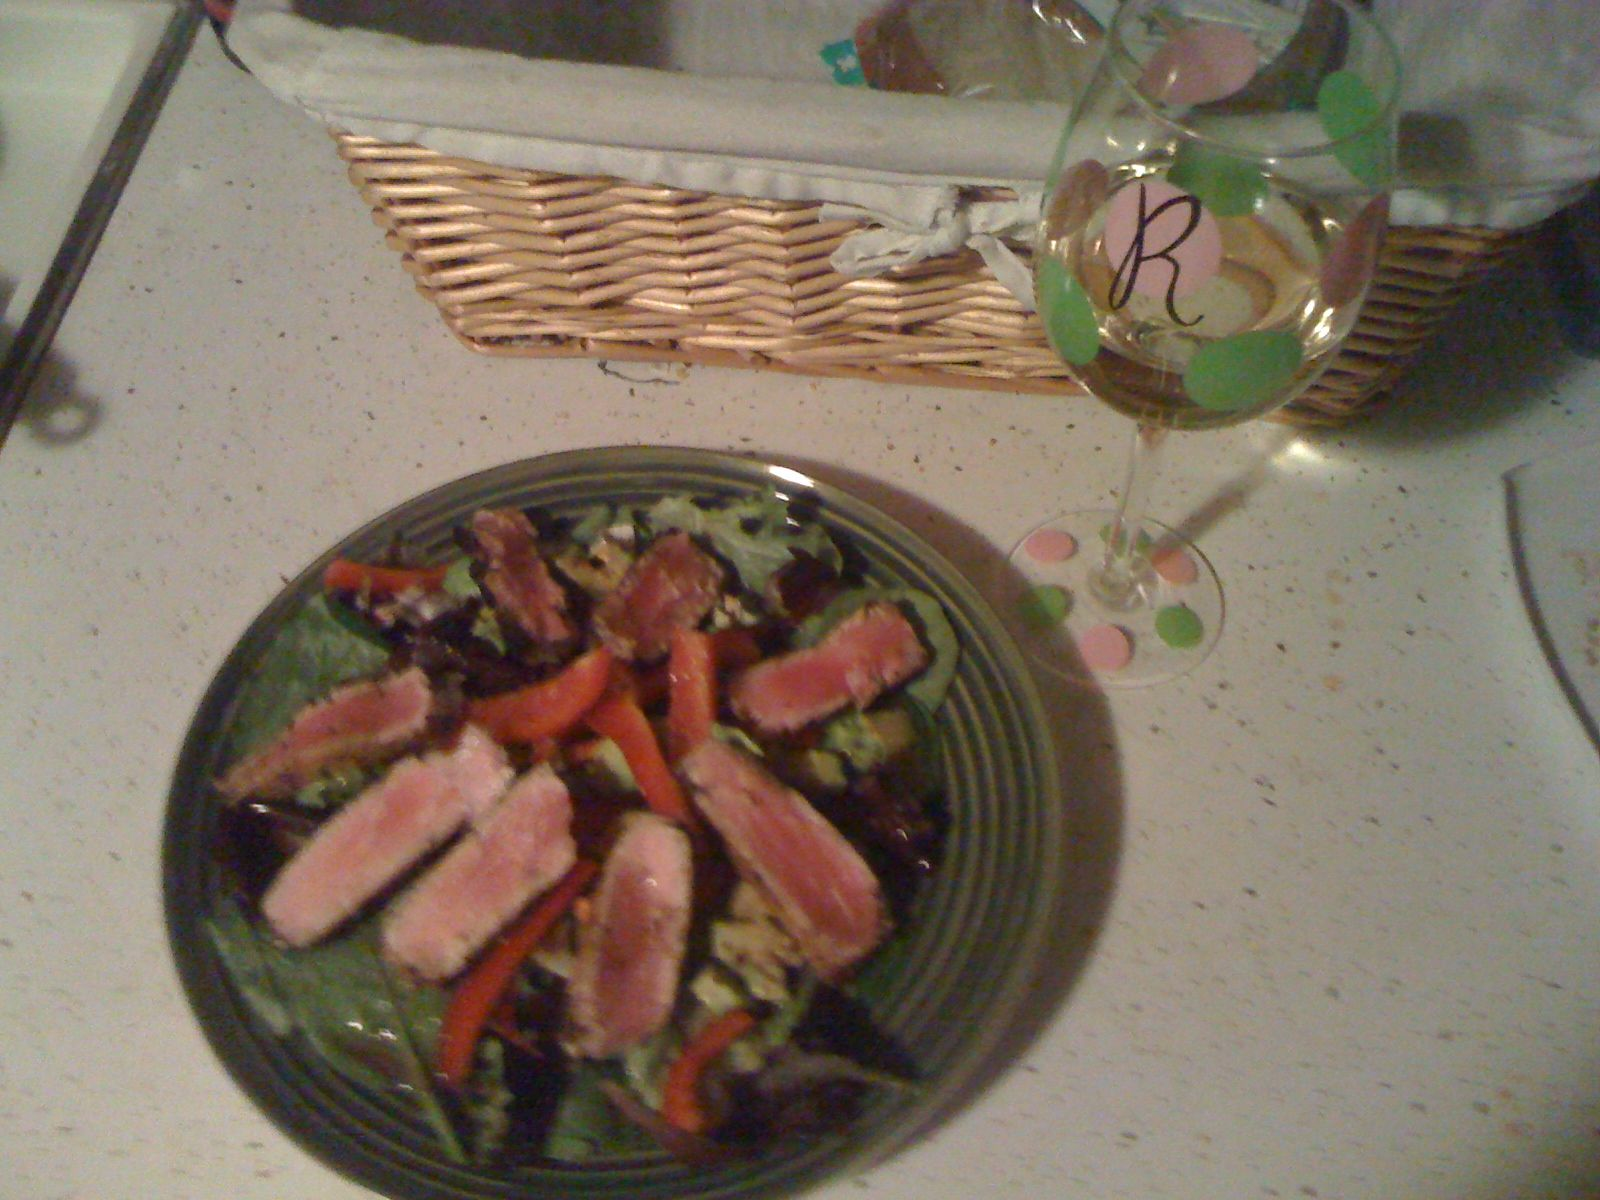 Seared Ahi Tuna on a bed of mixed greens with red peppers and a balsamic/srirracha dressing